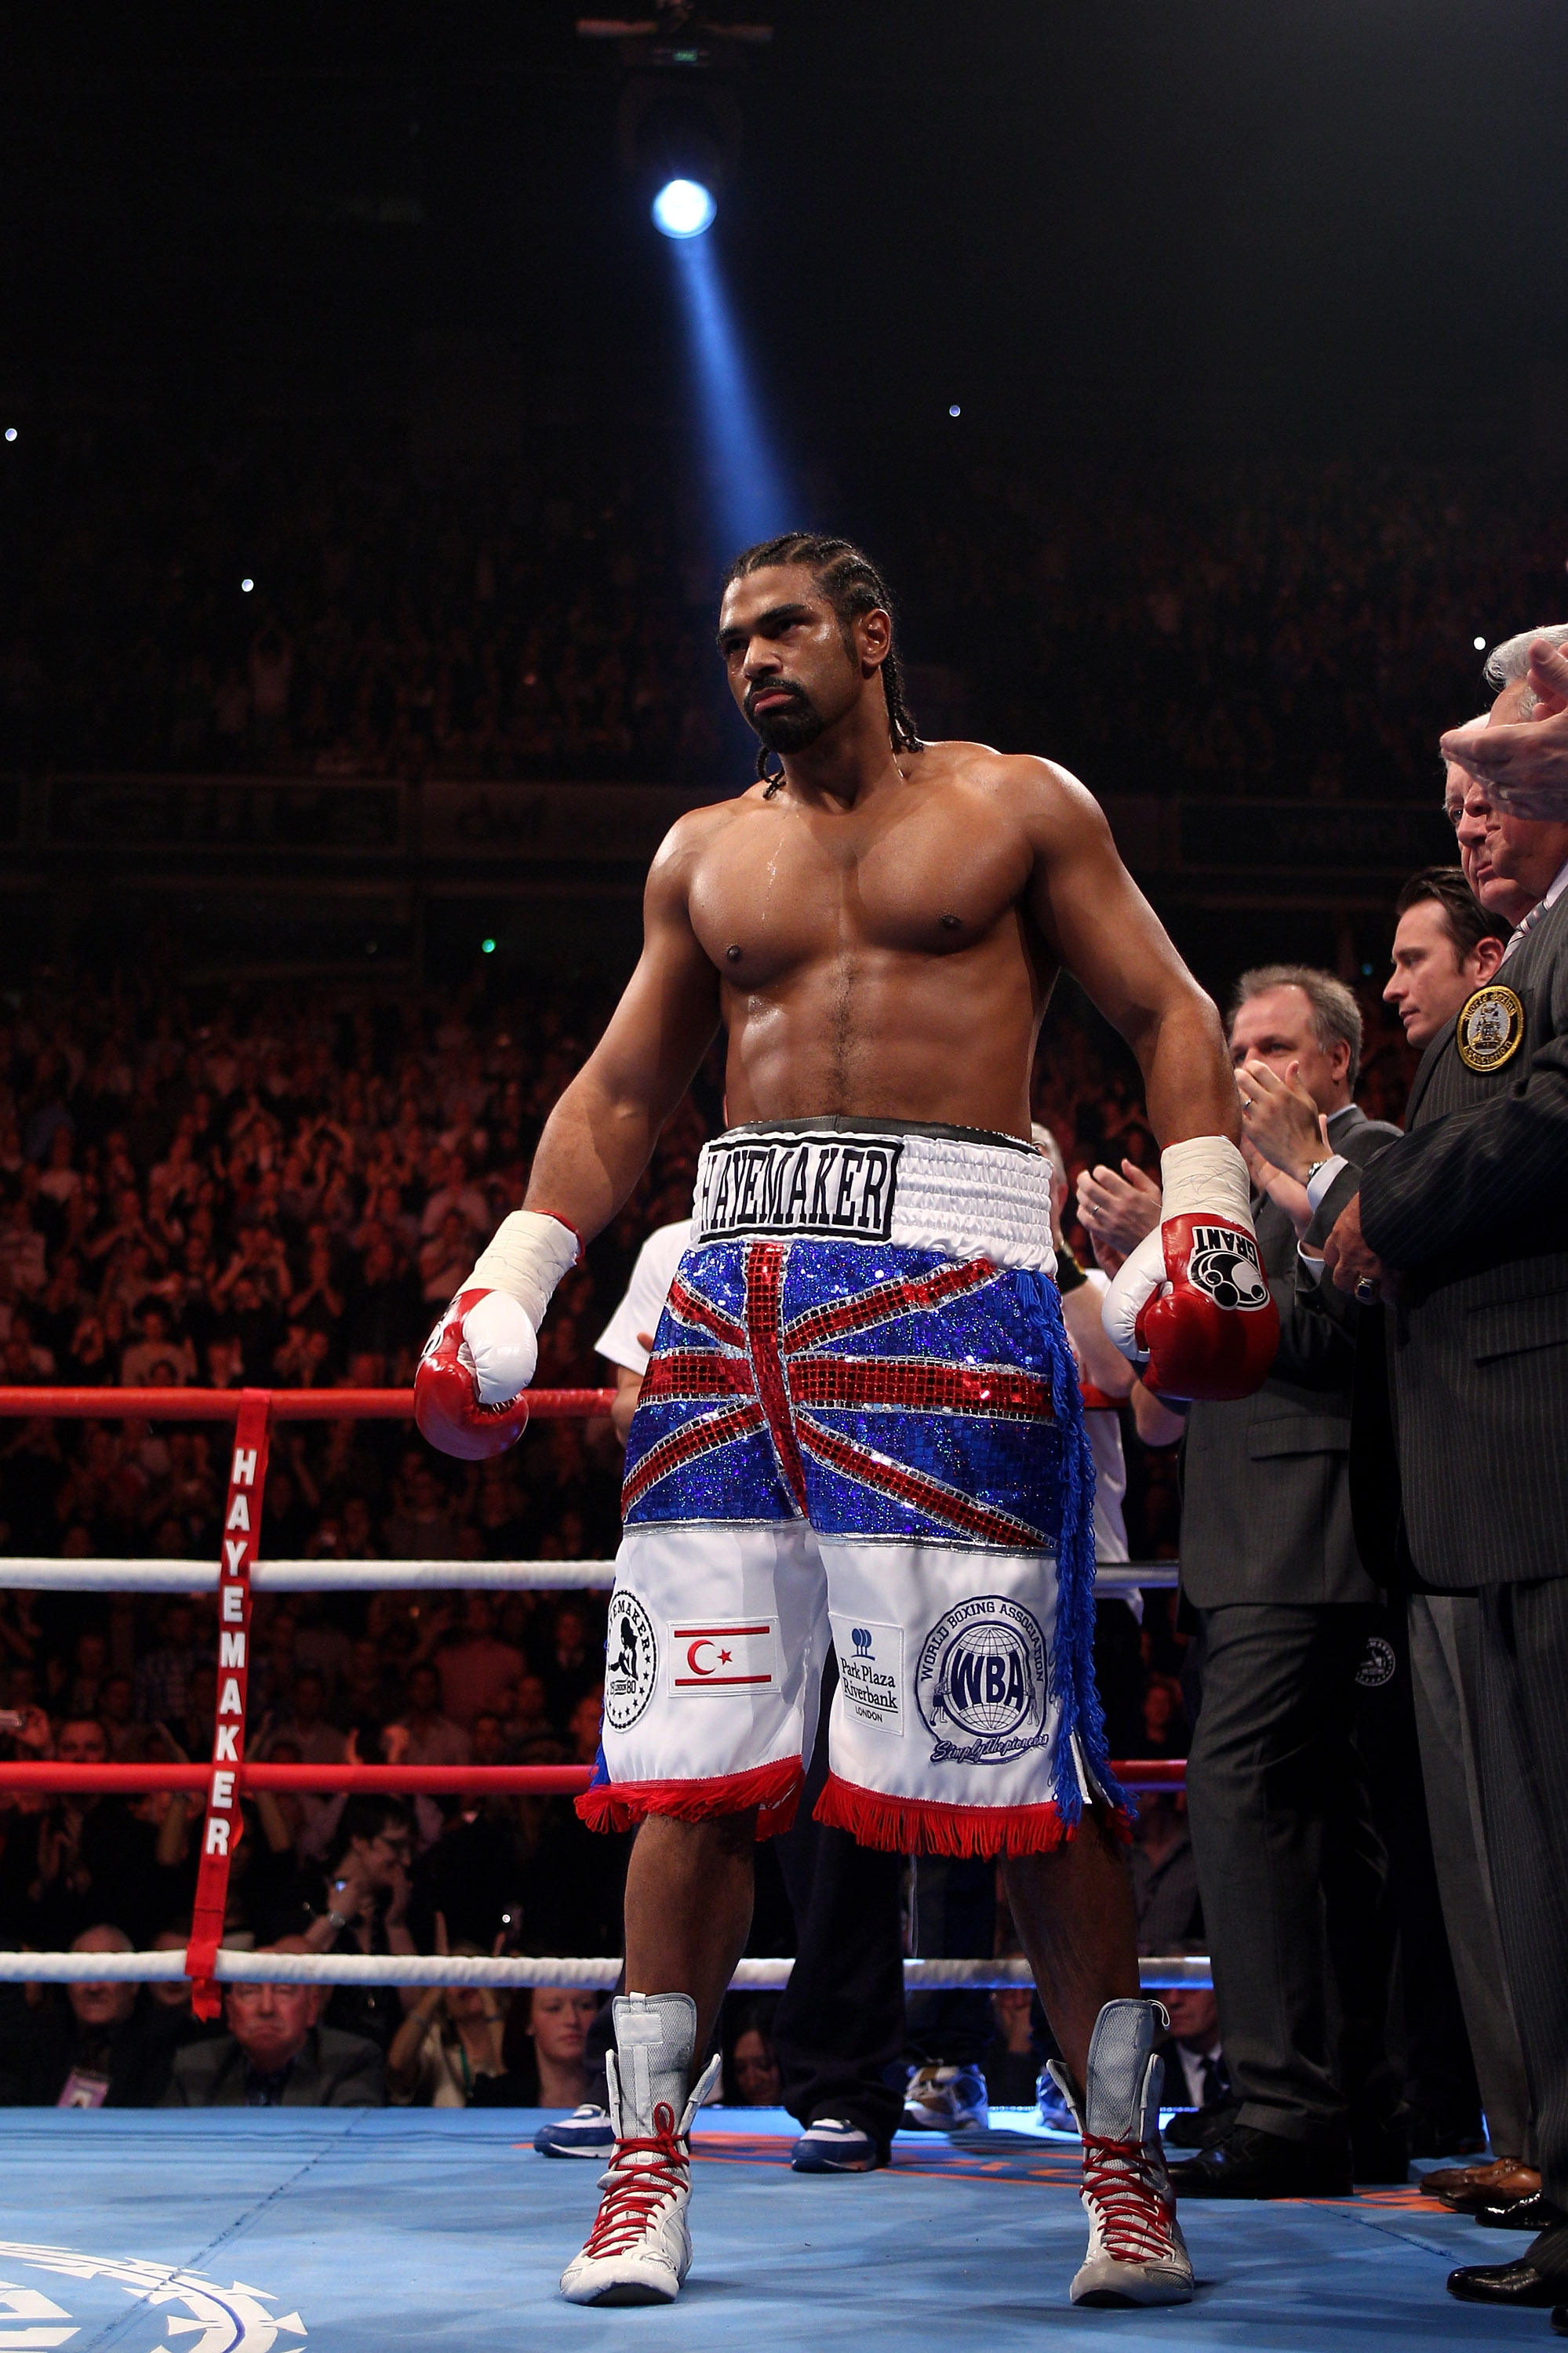 MANCHESTER, ENGLAND - APRIL 03:  David Haye of England is introduced to the crowd before fighting John Ruiz of USA during the World Heavyweight Bout at the MEN Arena on April 3, 2010 in Manchester, England.  (Photo by Michael Steele/Getty Images)